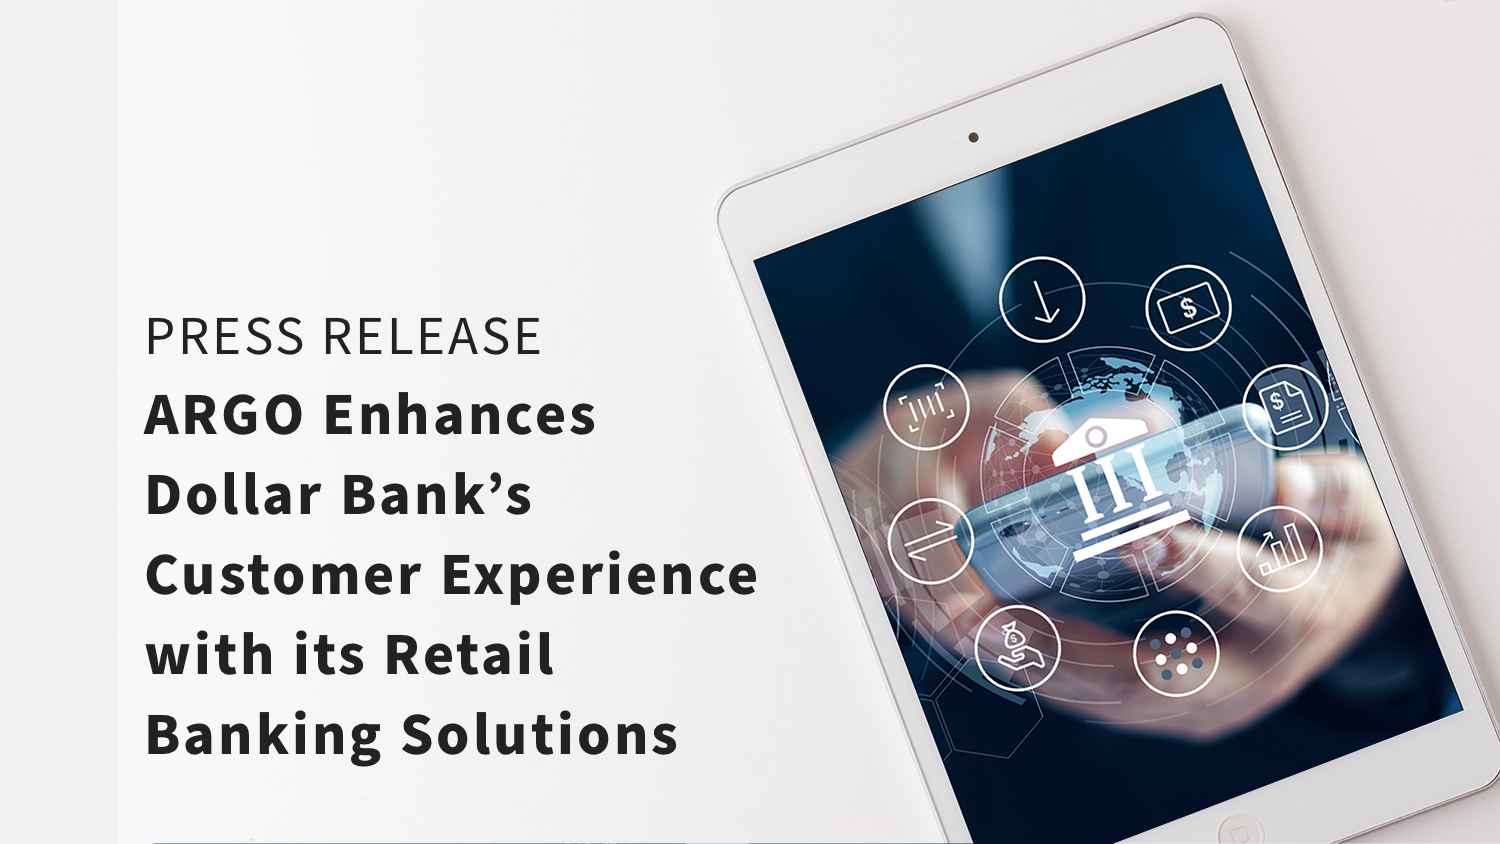 ARGO Enhances Dollar Bank's Customer Experience with its Retail Banking Solutions Press Release